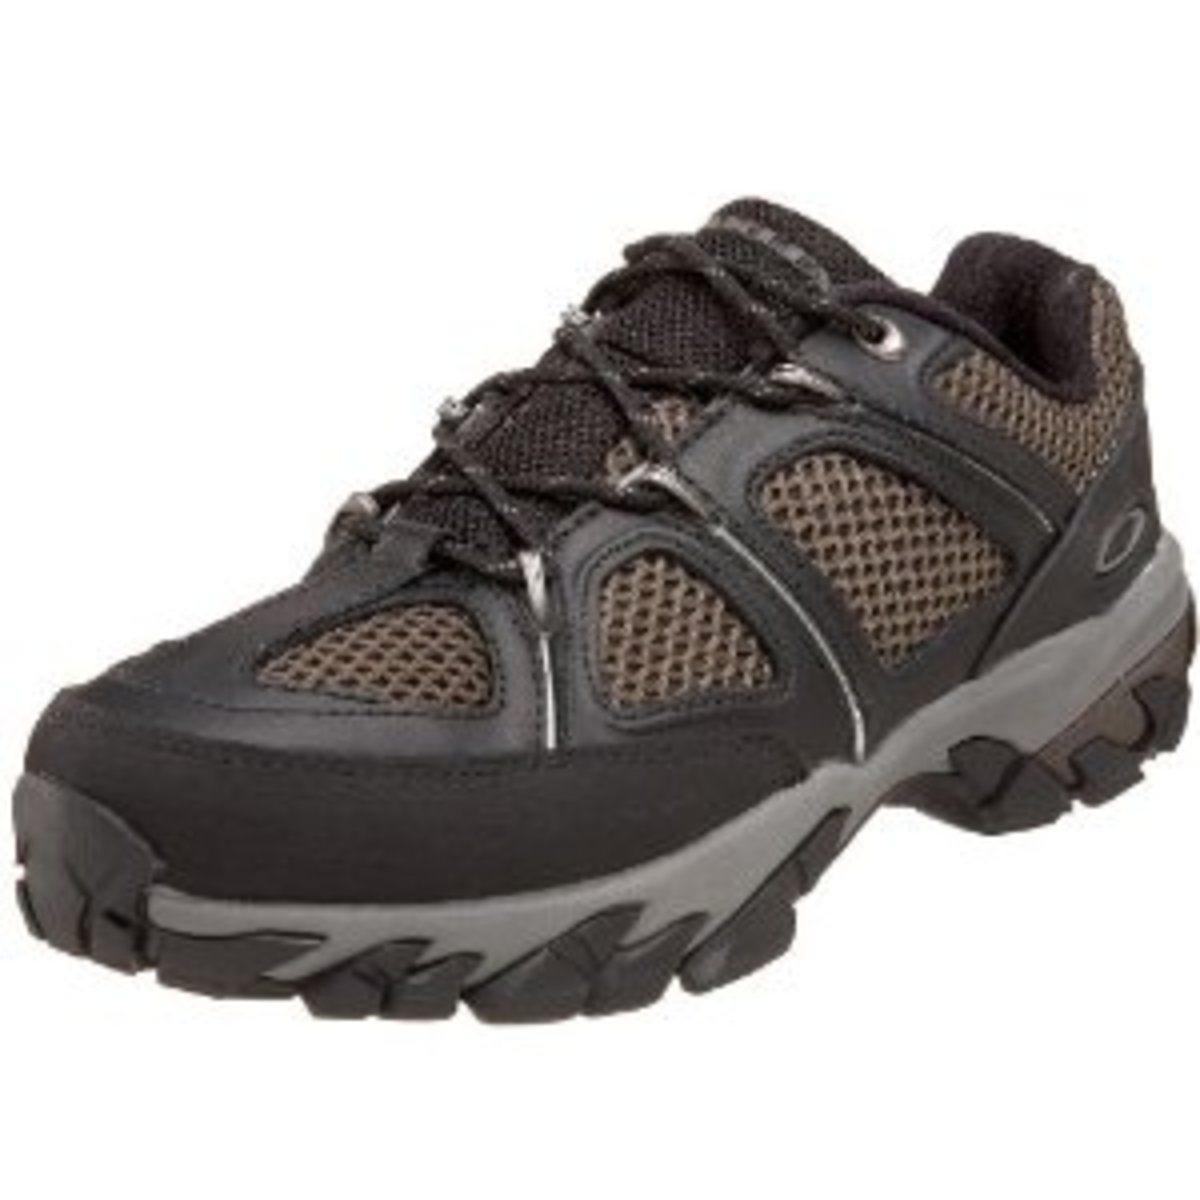 Oakley Men's Nail Low Hiking Shoe